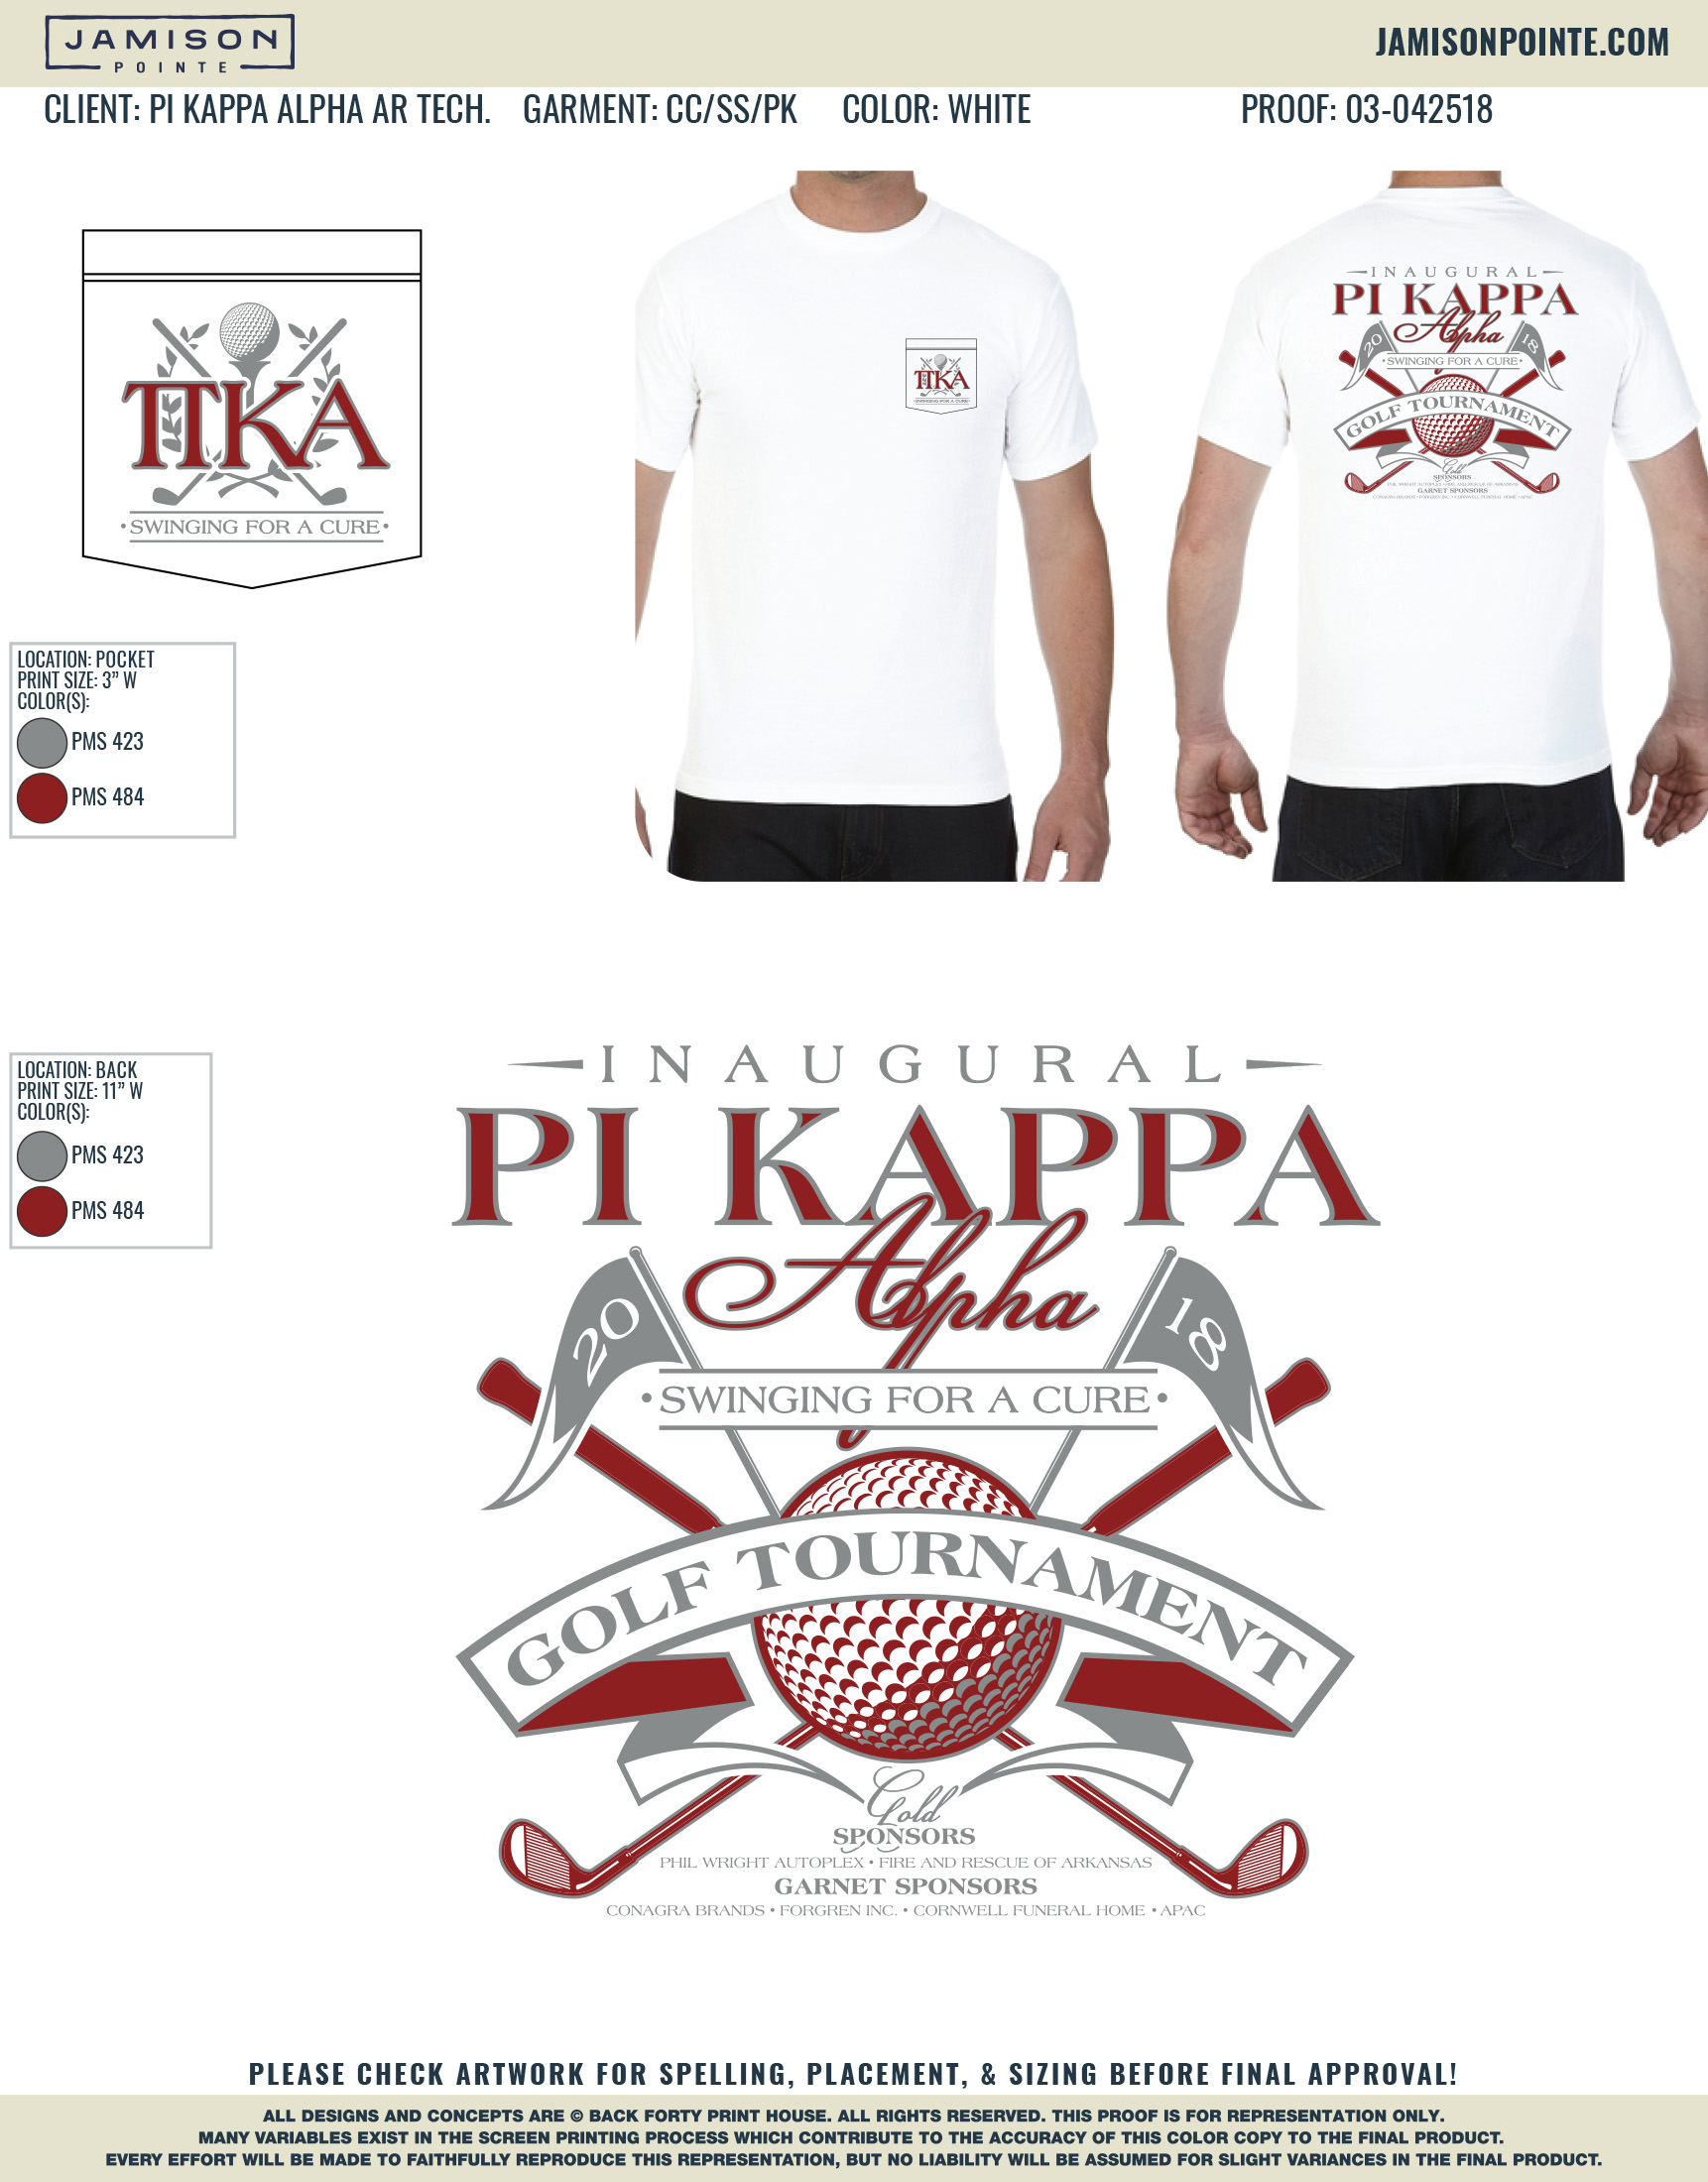 03-042518 Pi Kappa Alpha Arkansas Tech University Philanthropy 2018.jpg